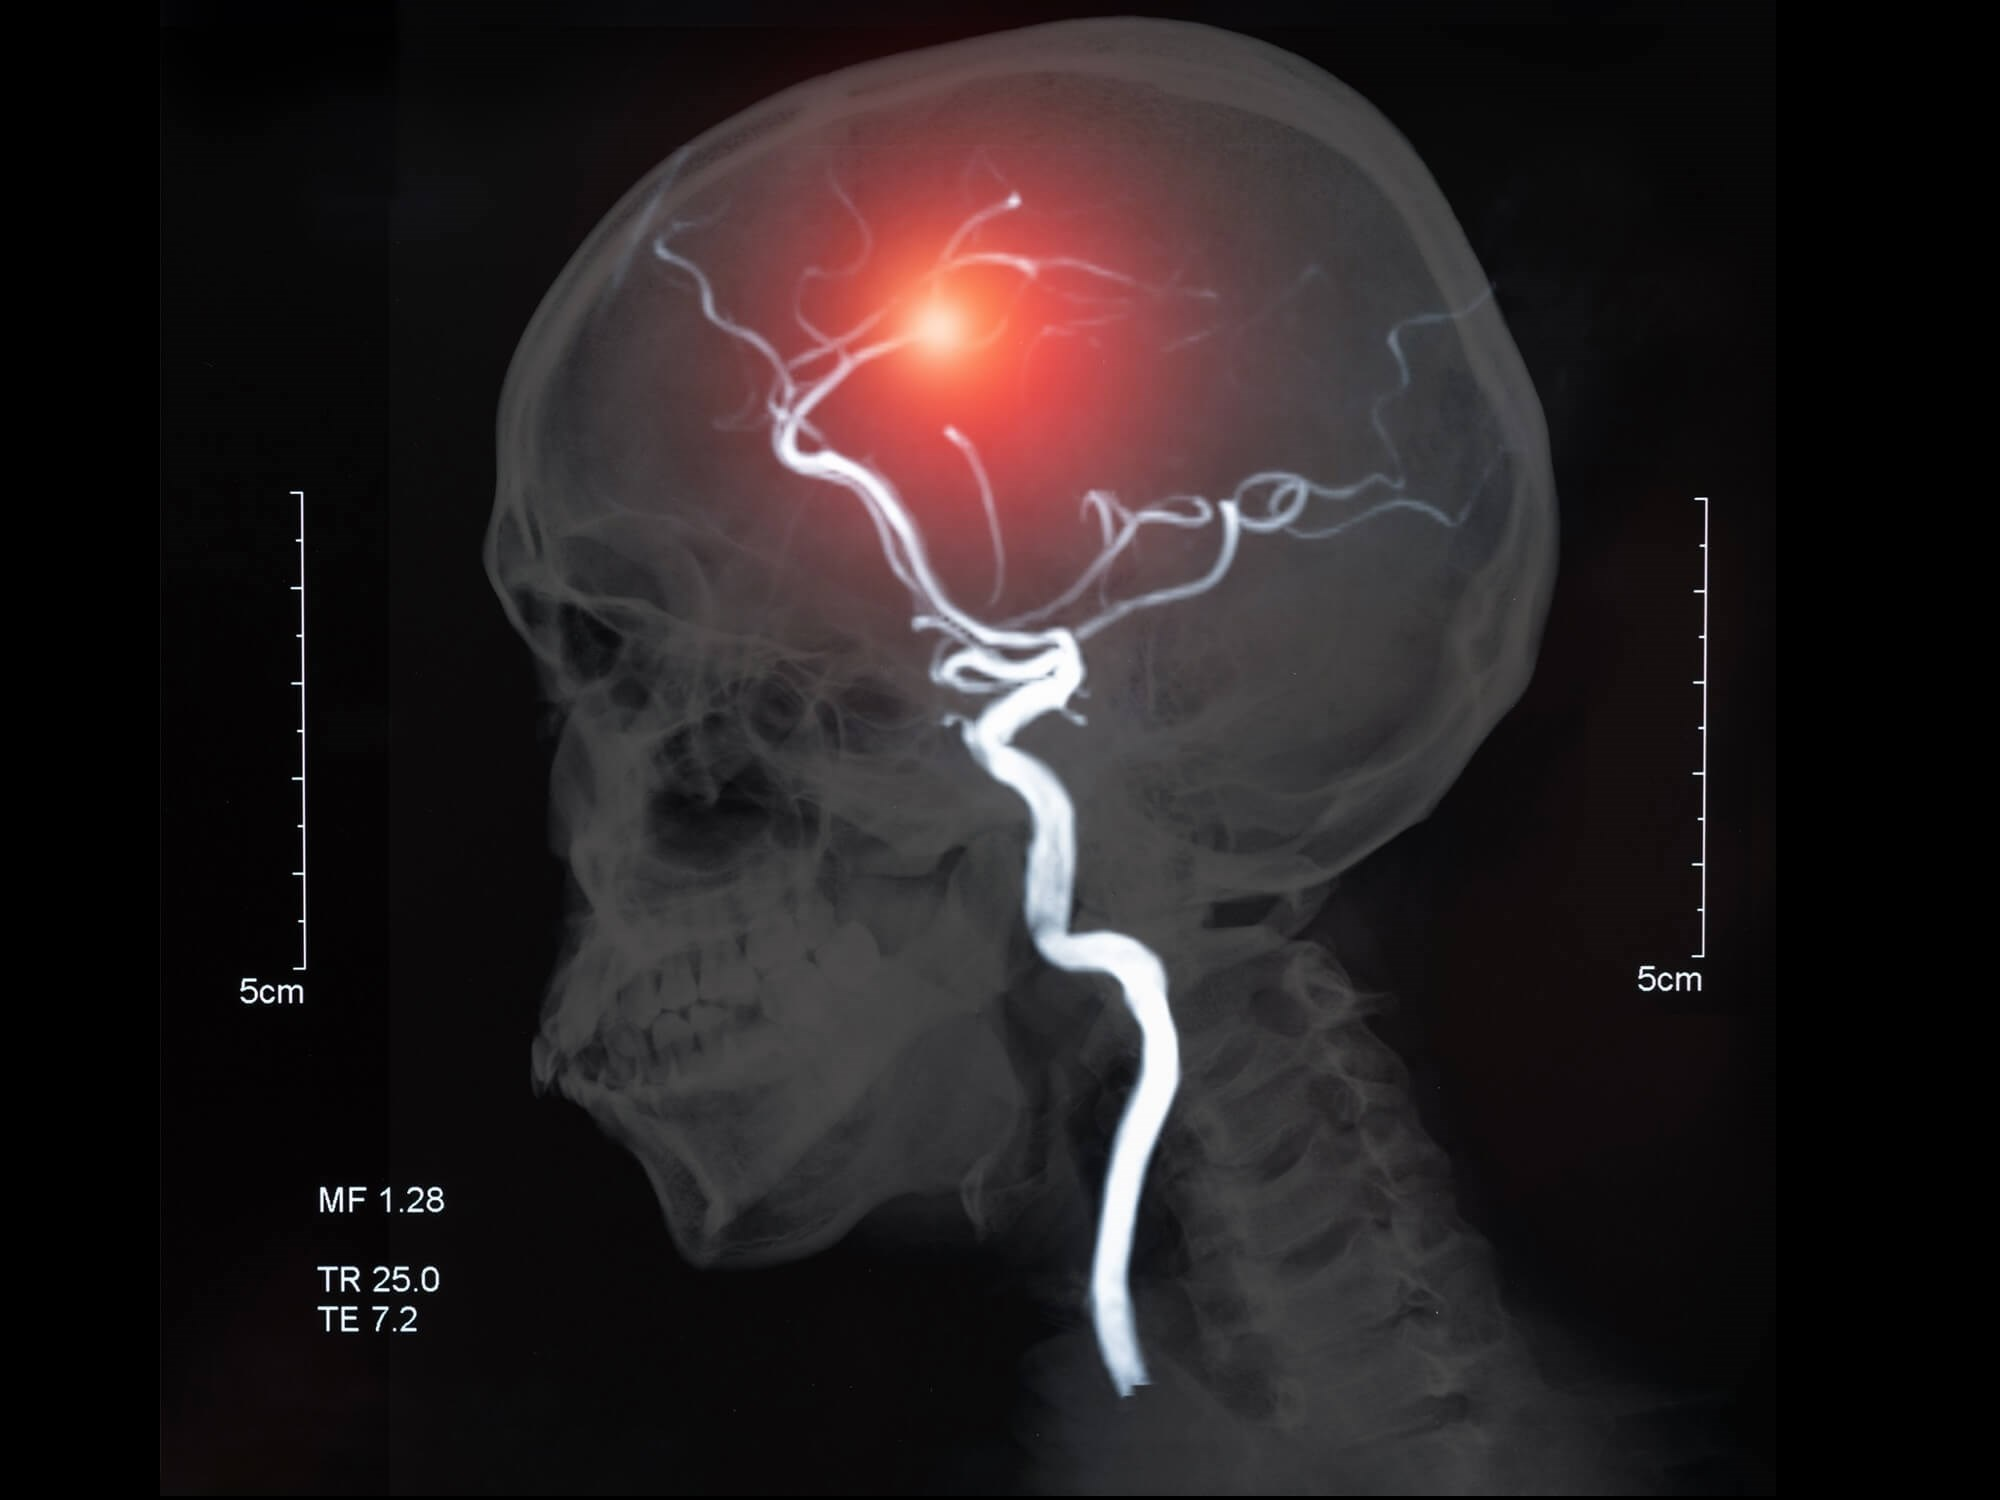 Eslicarbazepine Acetate Well Tolerated, Effective in Post-Stroke Epilepsy